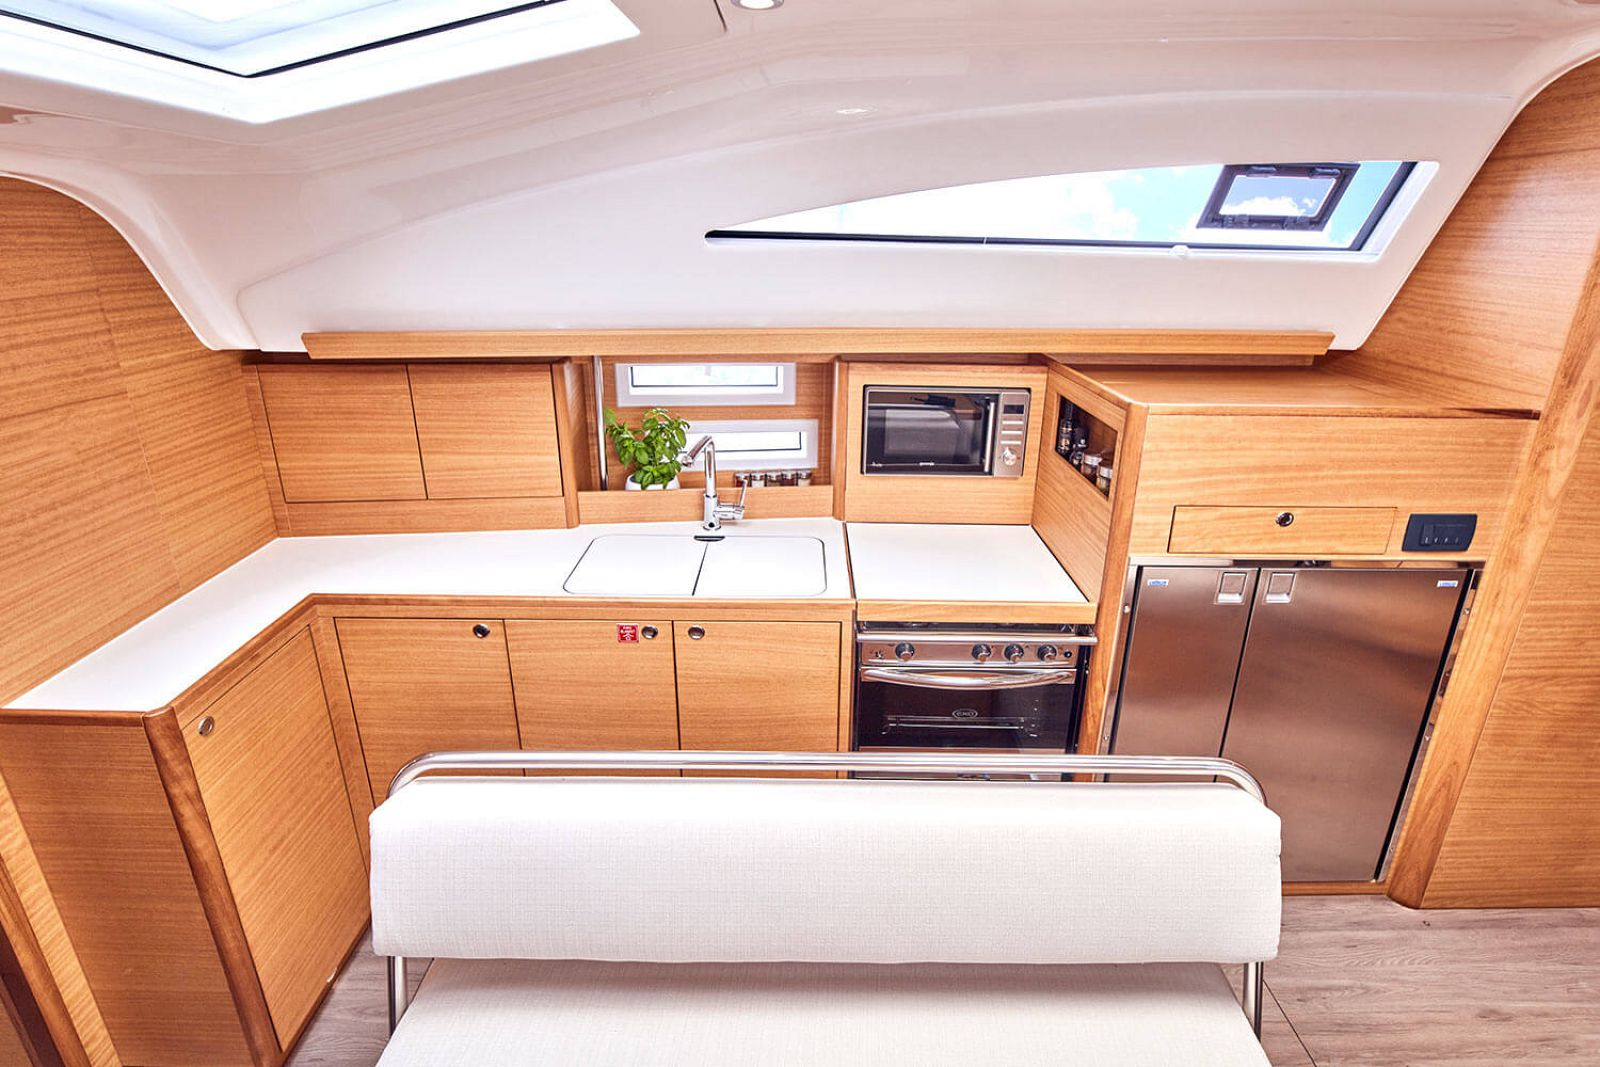 Galley on the elan yachts 45.1